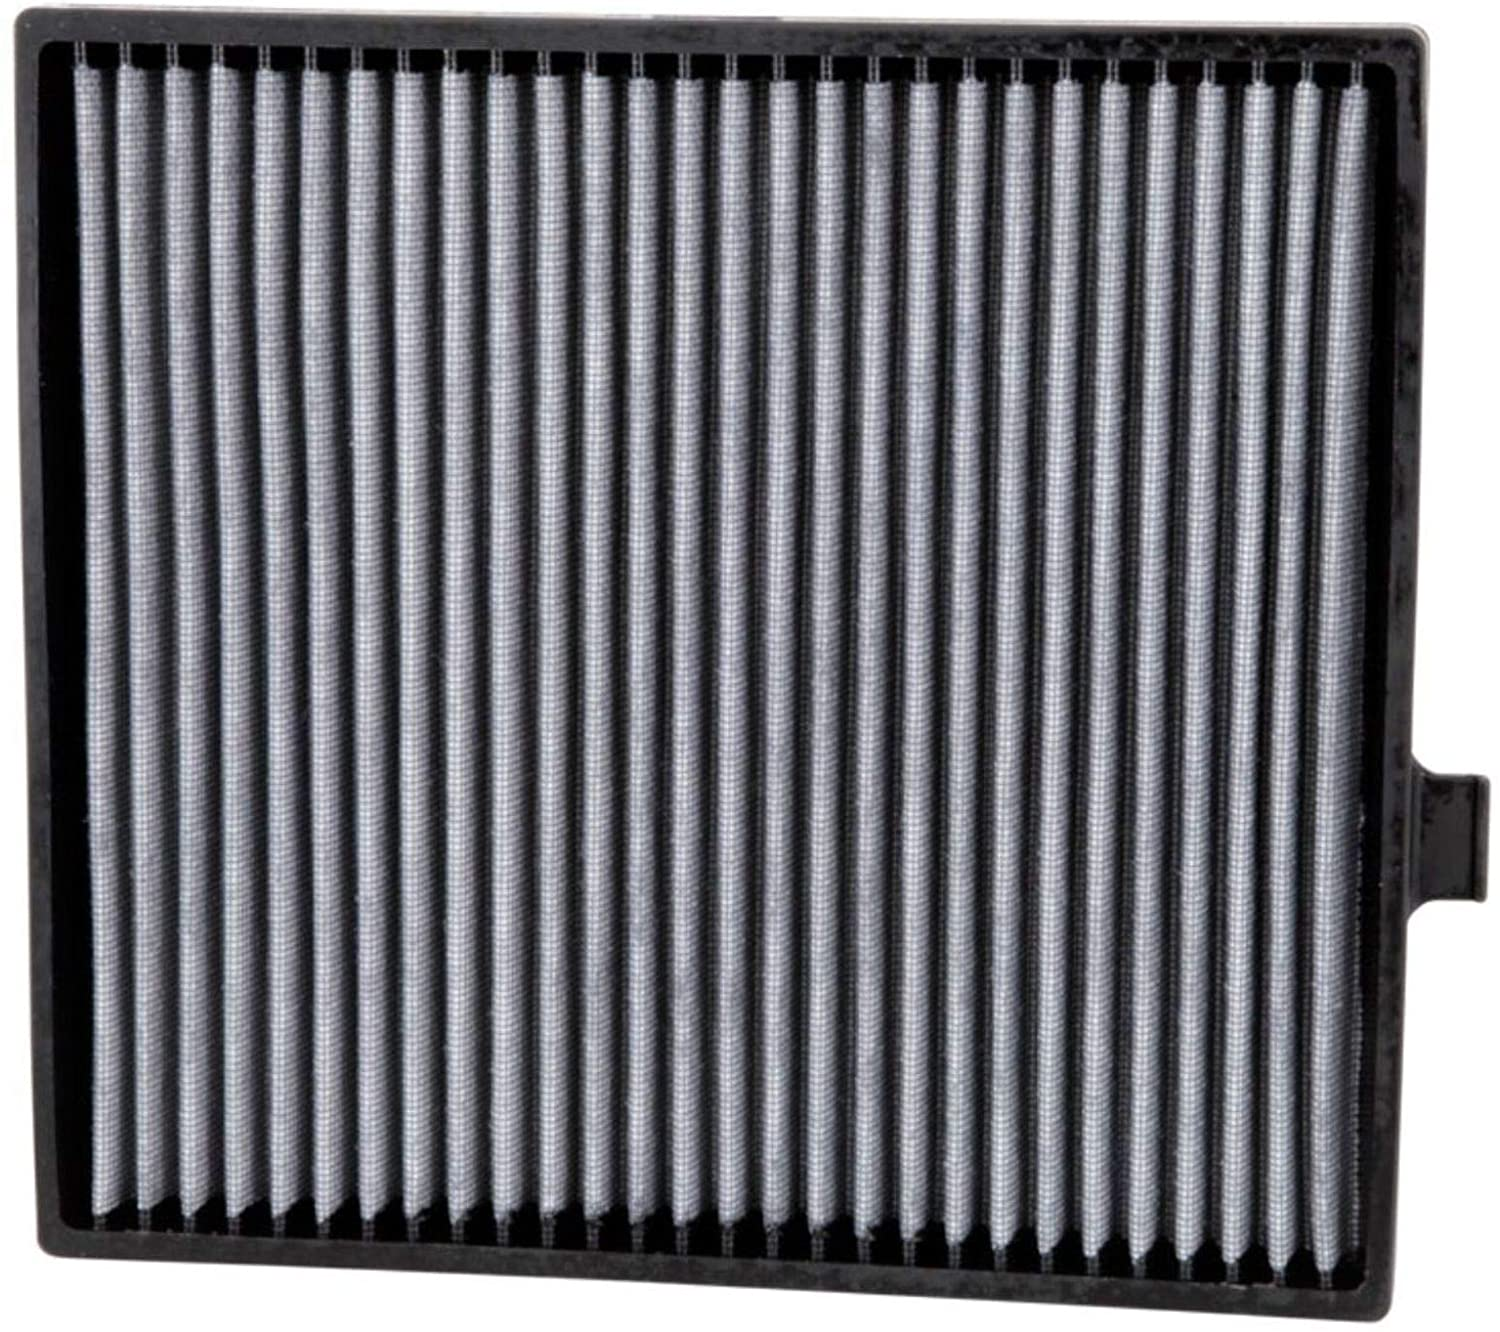 K&N Premium Cabin Air Filter: High Performance, Washable, Lasts for the Life of your Vehicle: Designed for Select 1999-2008 HONDA/ACURA (Odyssey, Pilot, MDX)Vehicle Models, VF3004